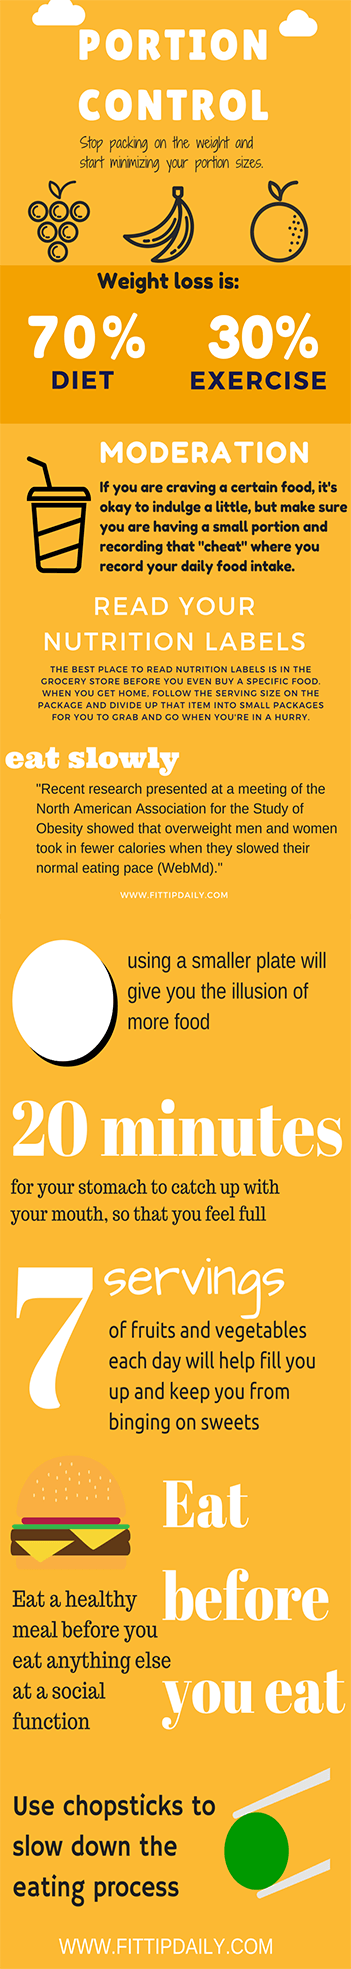 tips for portion control